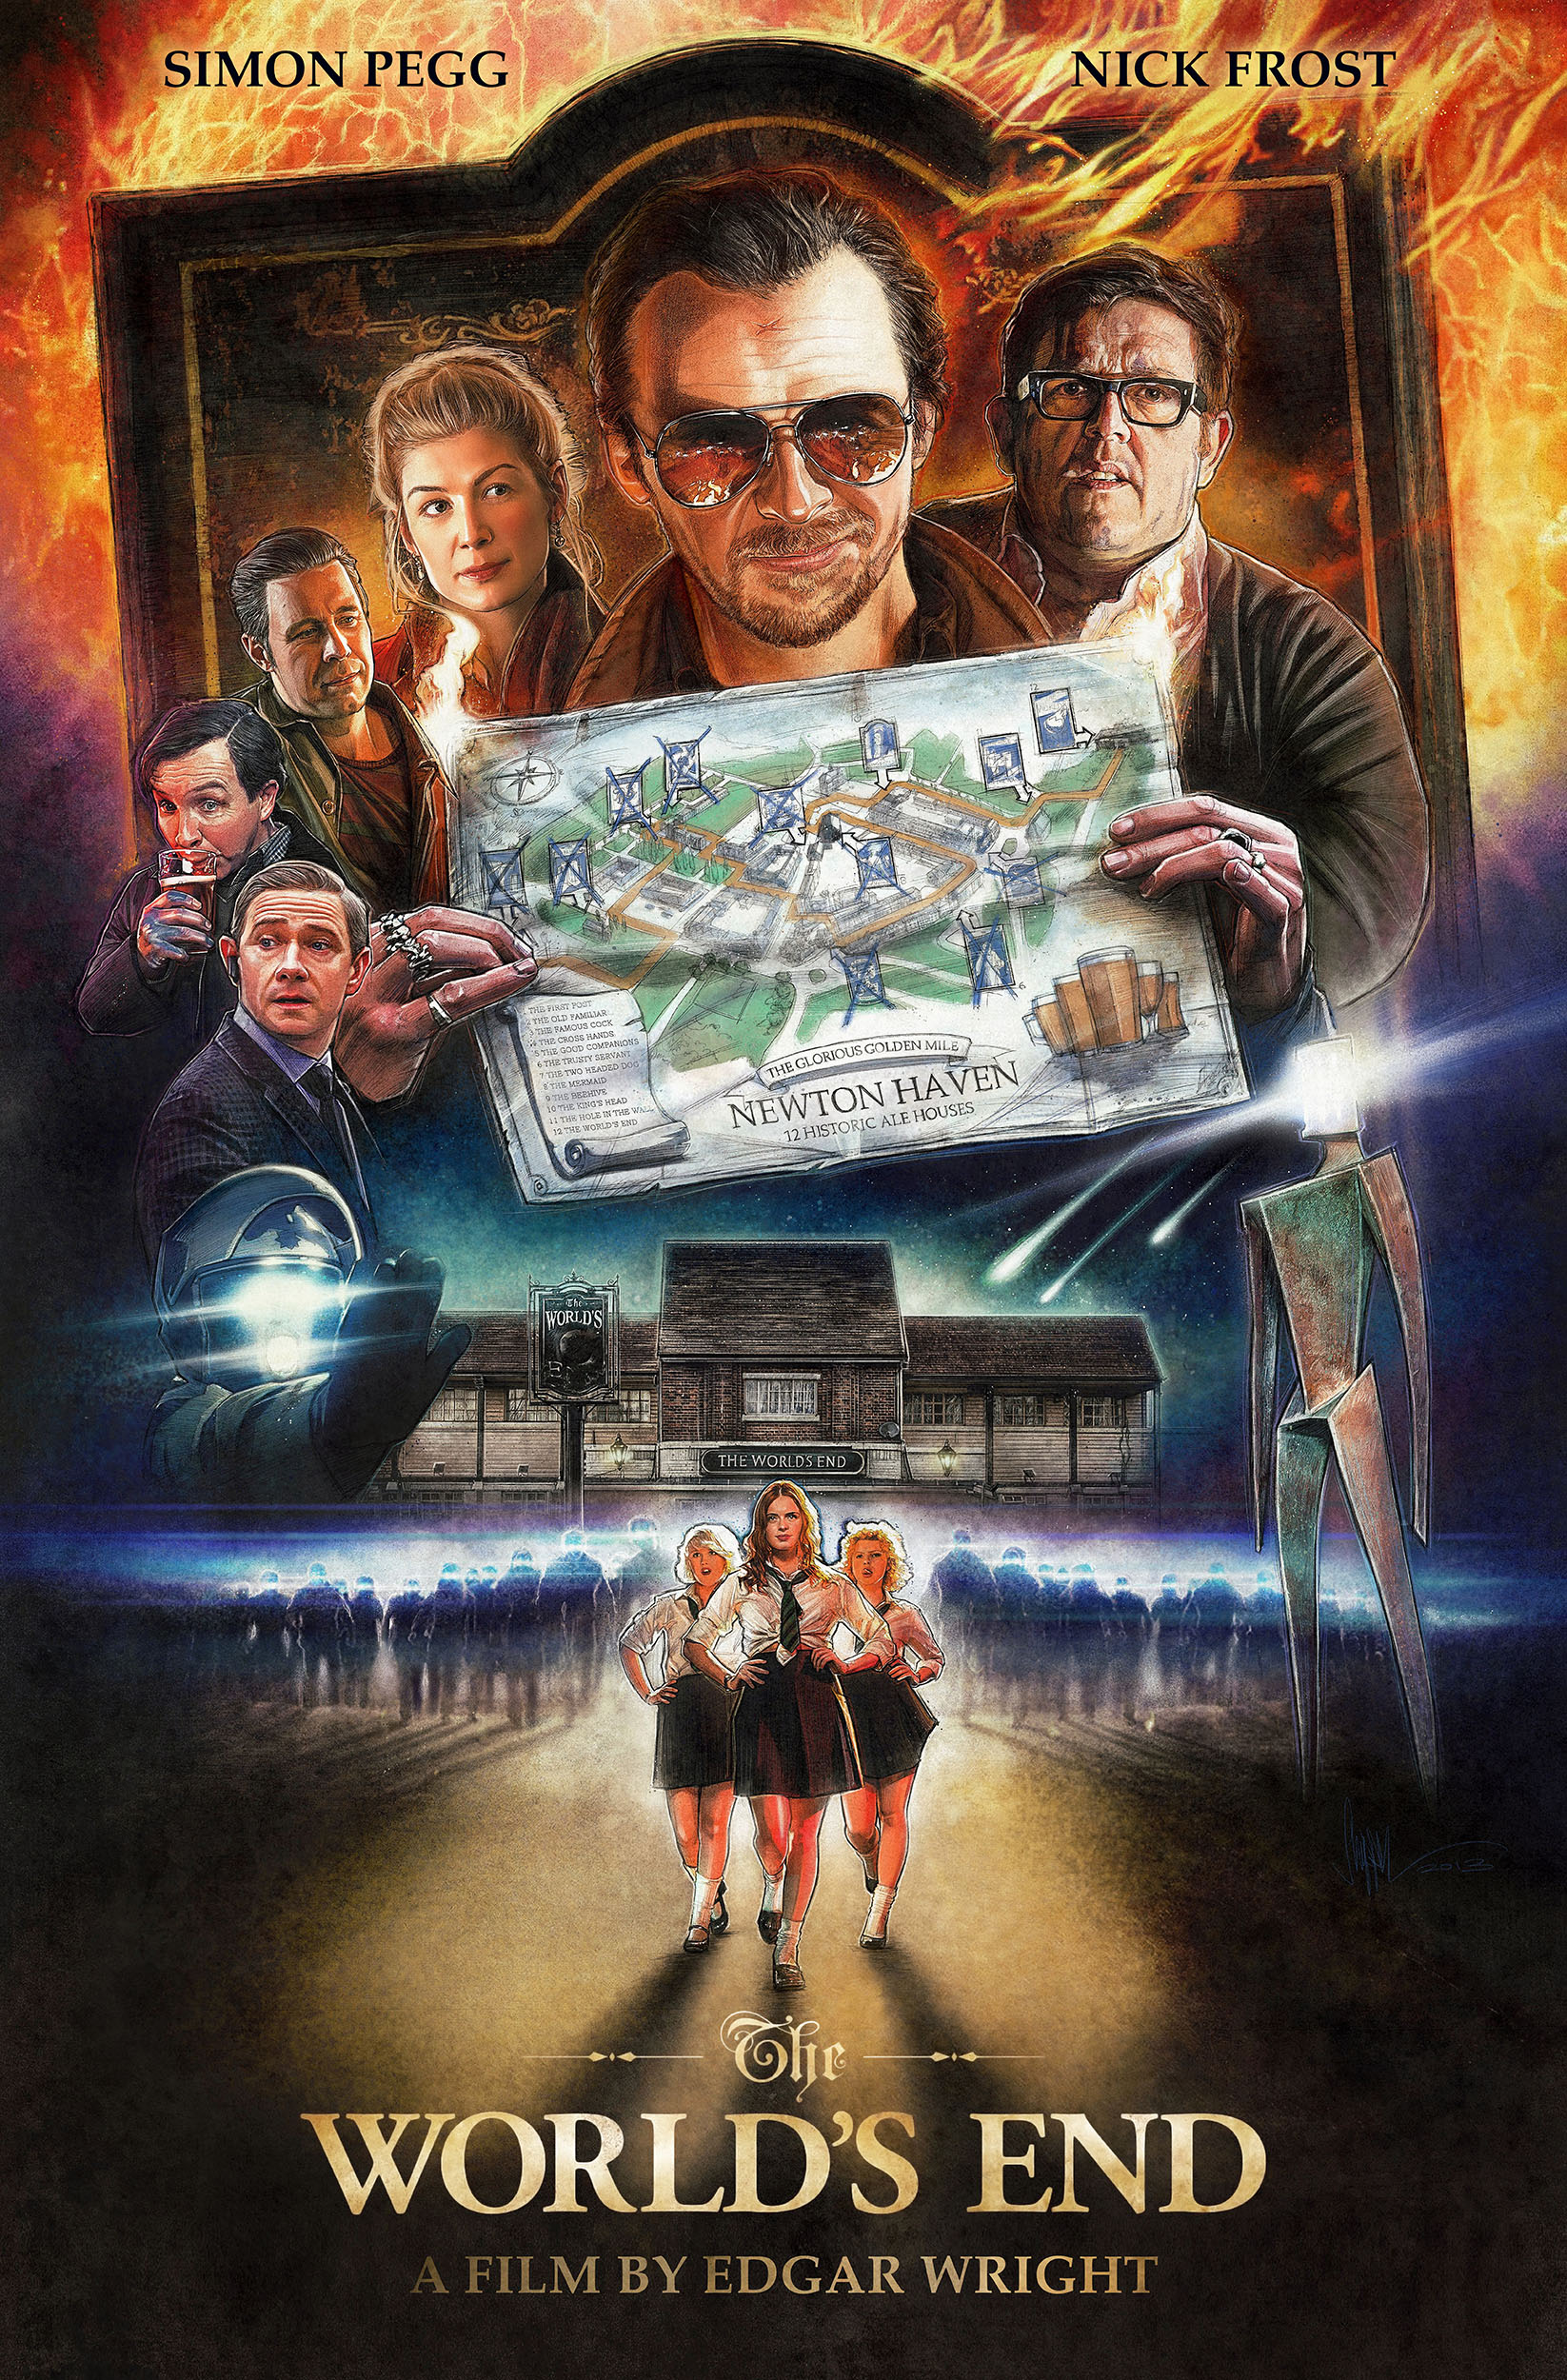 The World's End - Finished Illustrated Poster